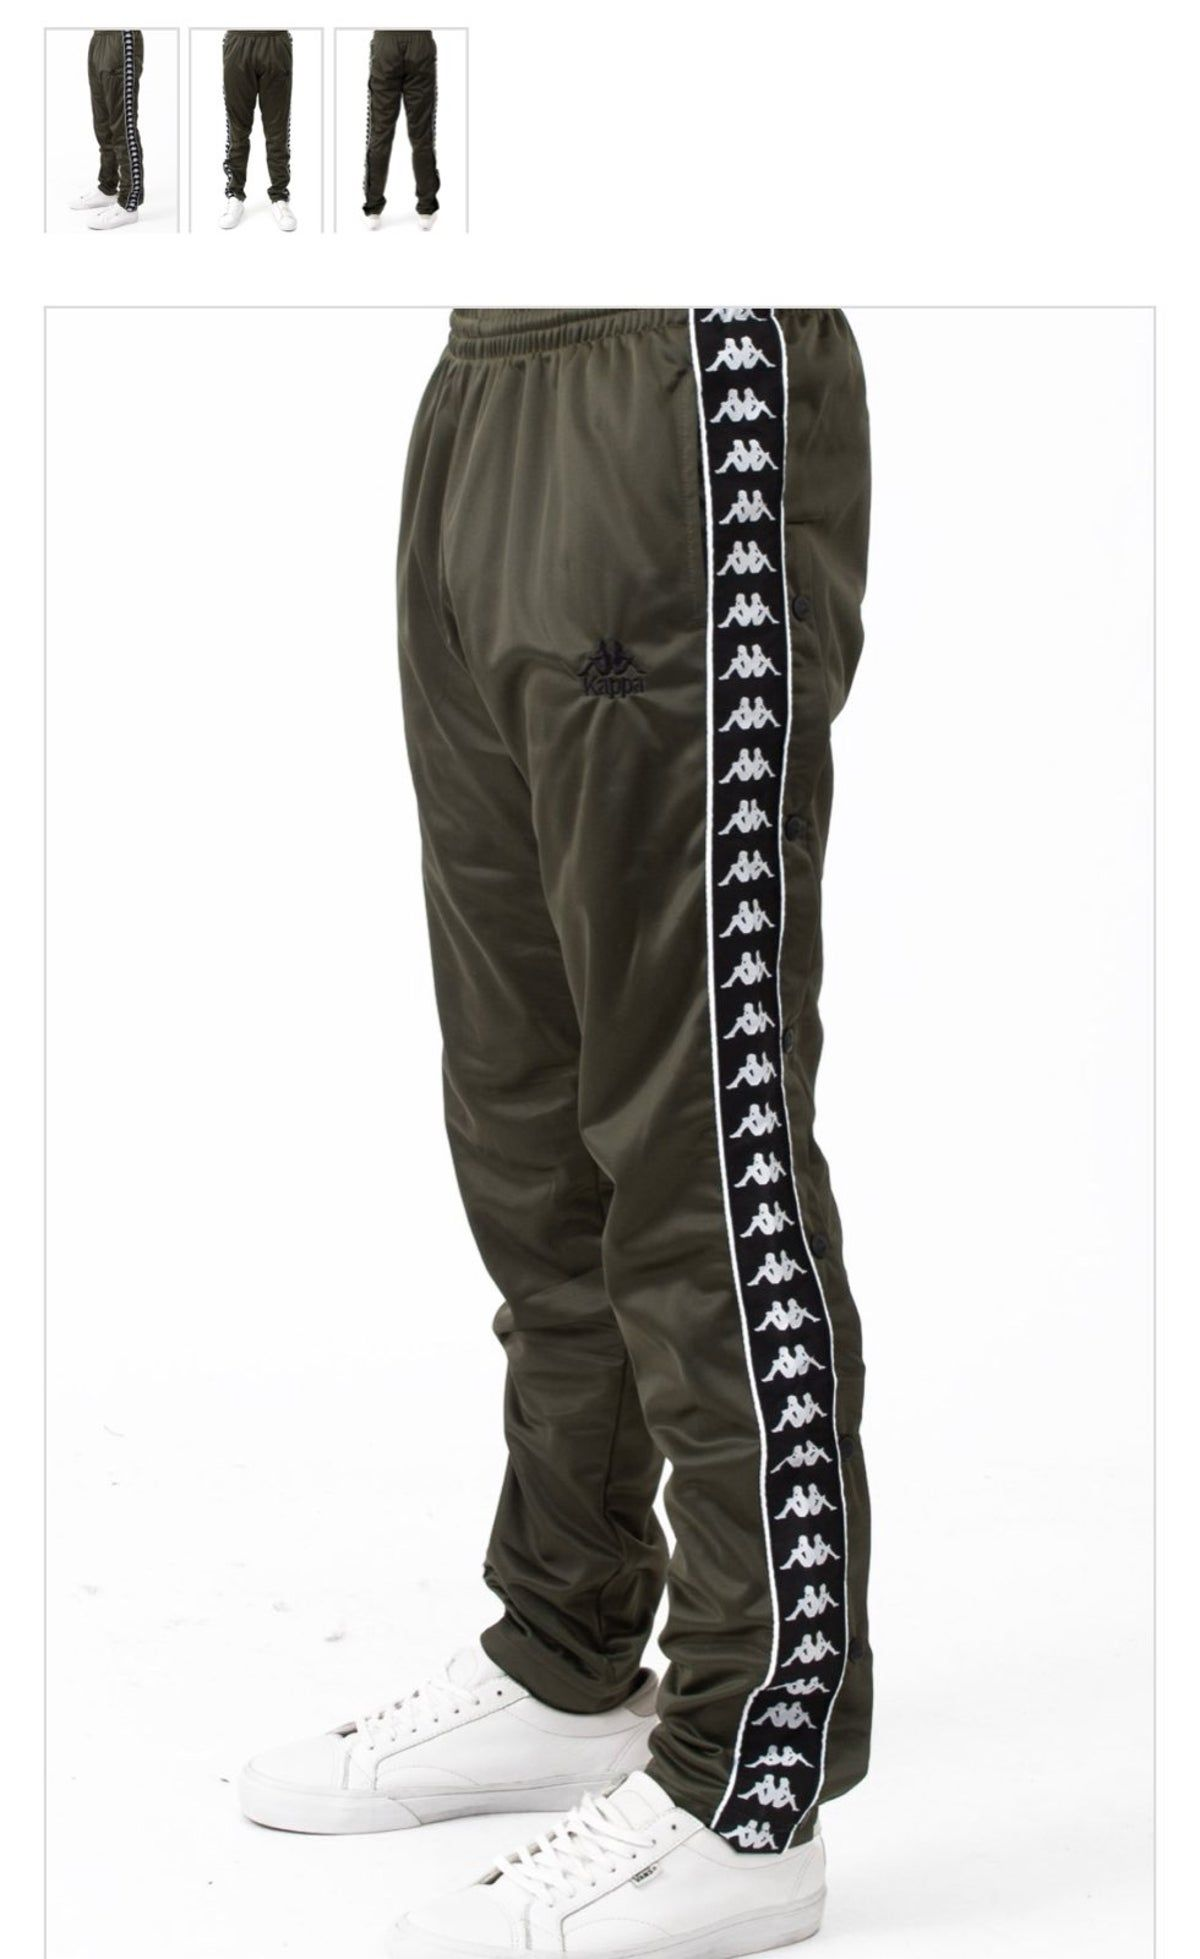 Download Pin By Michael Thorneycroft On Track Pants Pants Track Pants Slim